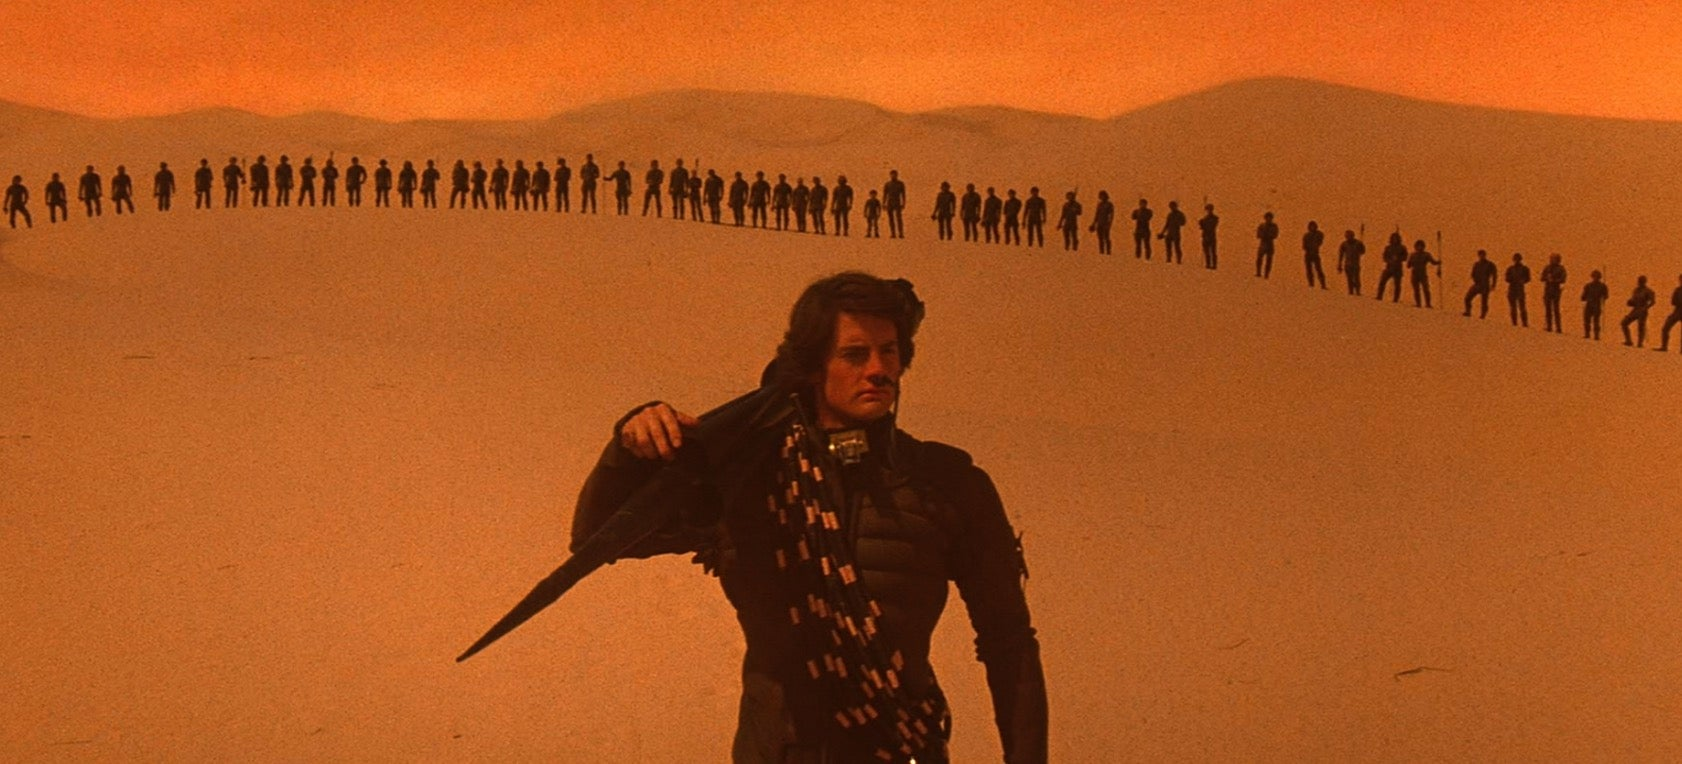 The New Dune Movie Is Being Written By The Man Who Wrote Forrest Gump